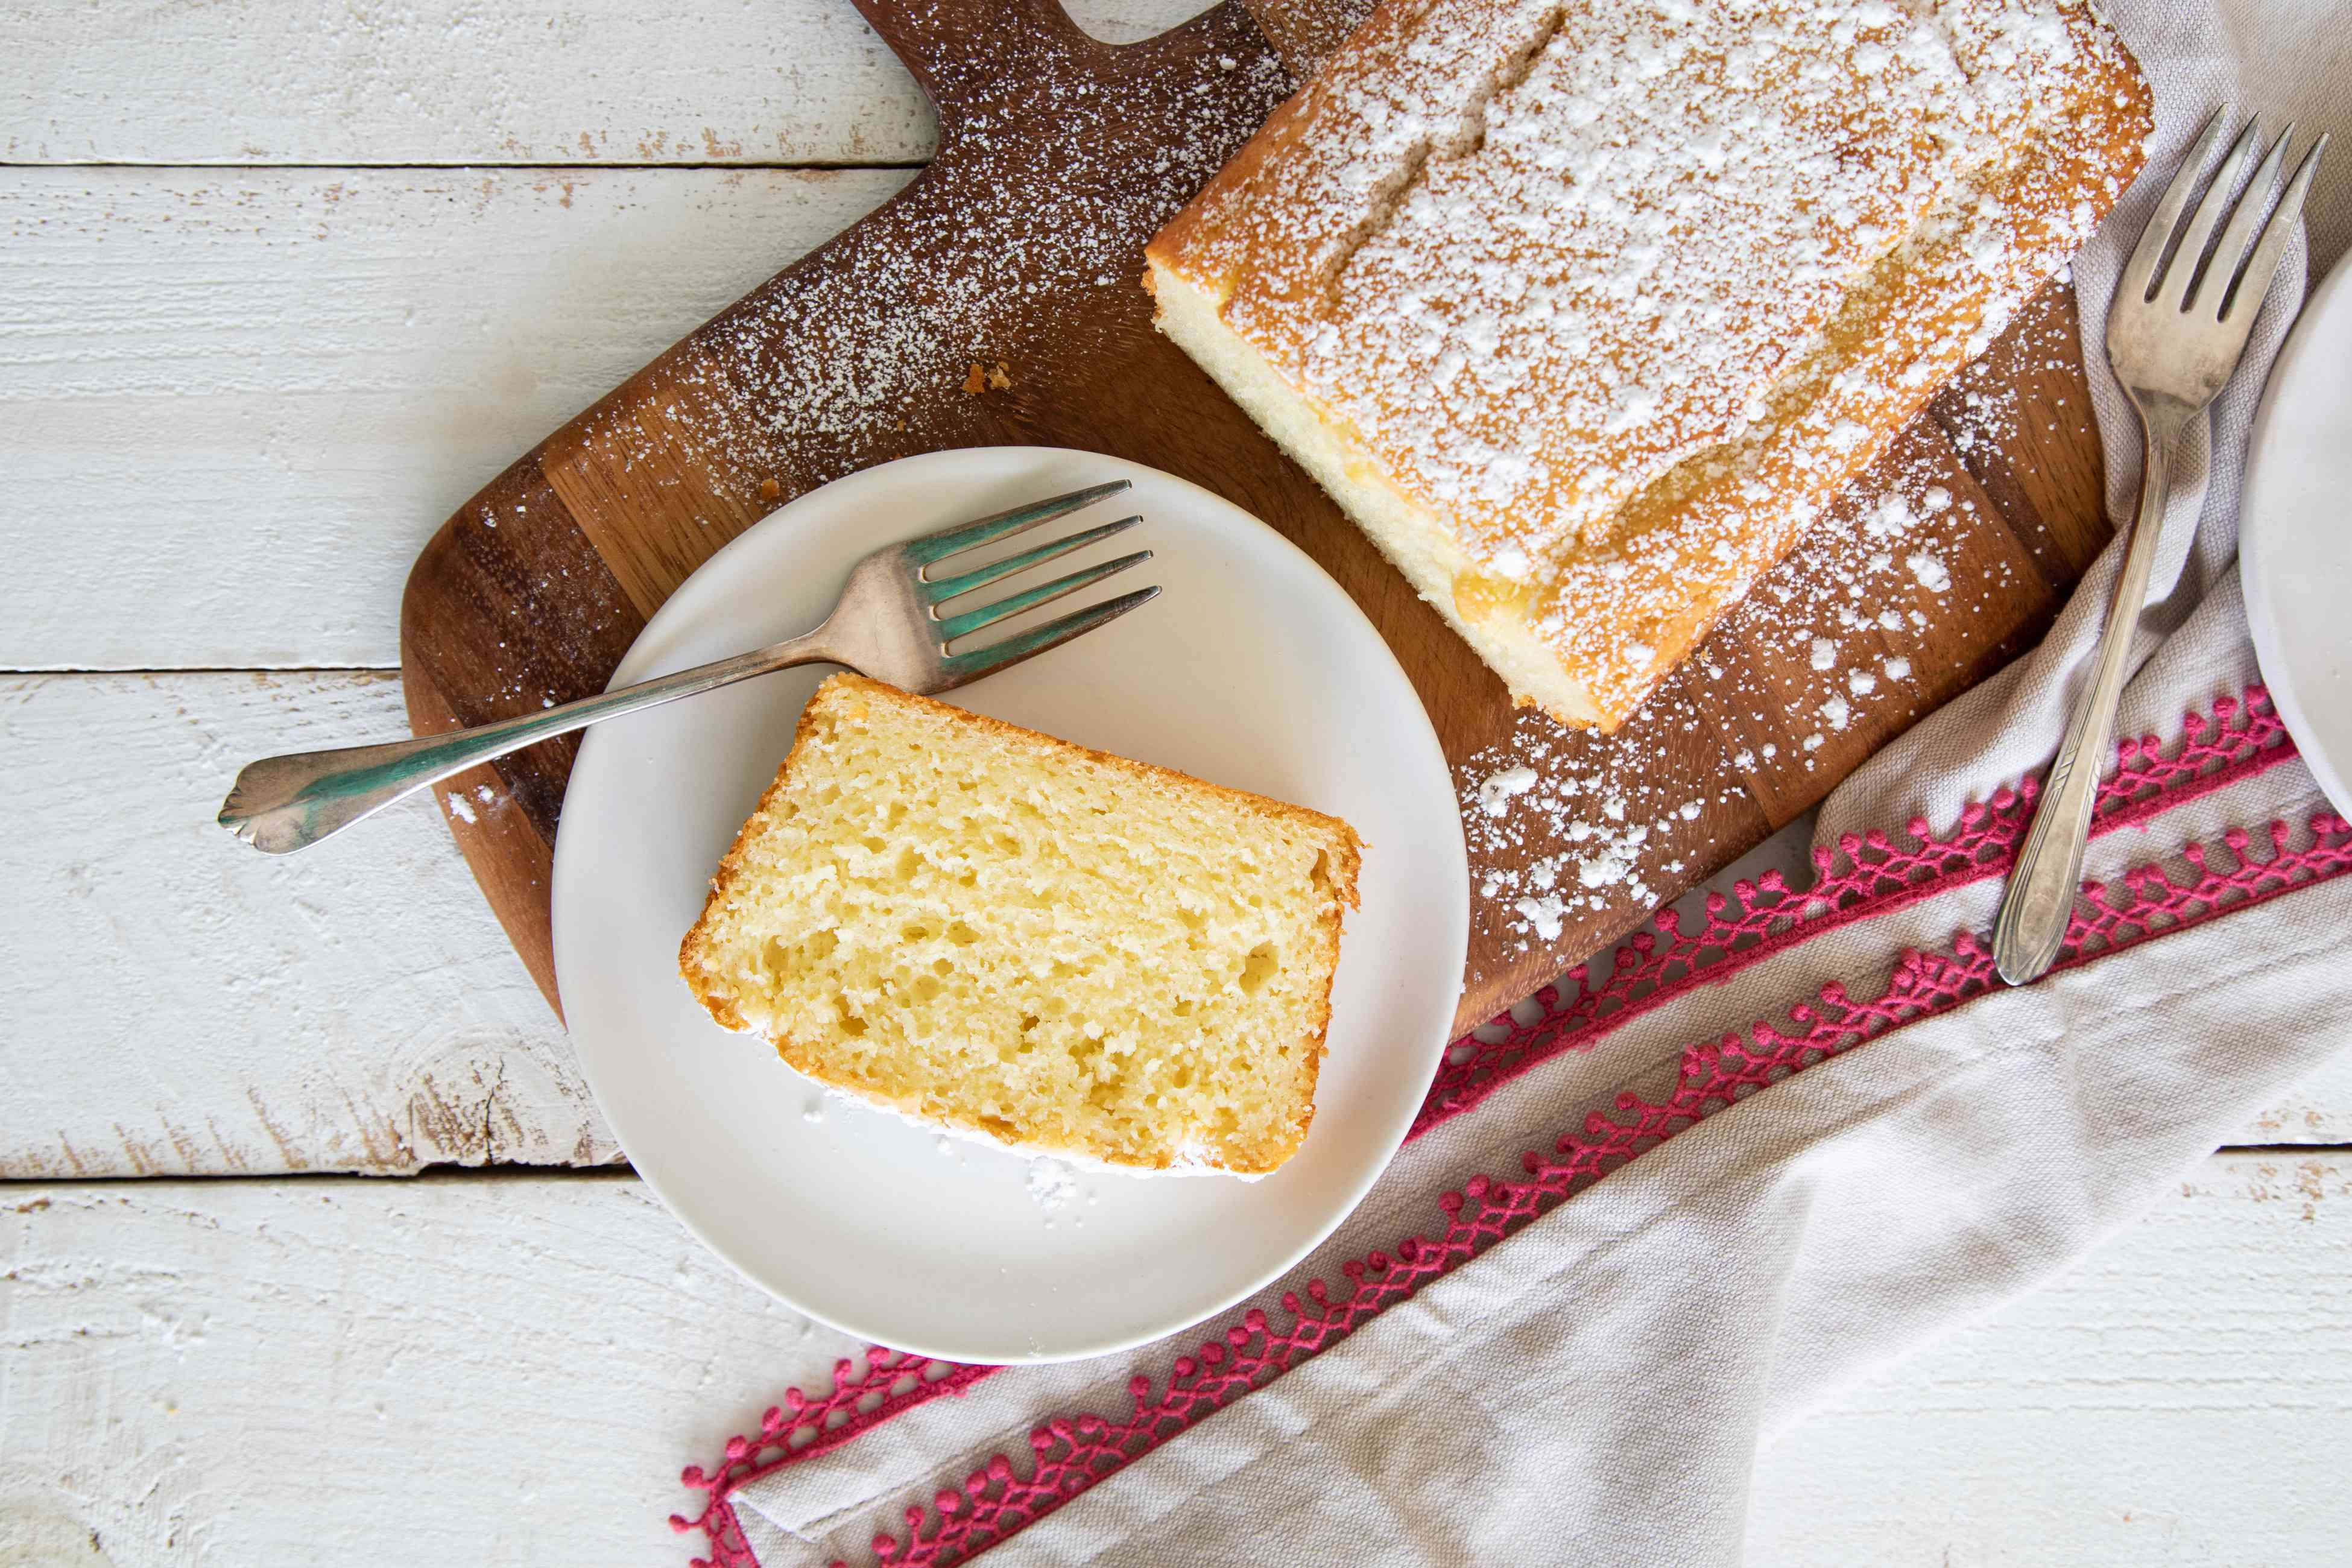 A slice of Olive Oil Yogurt Cake on a plate with the rest of the loaf next to it.